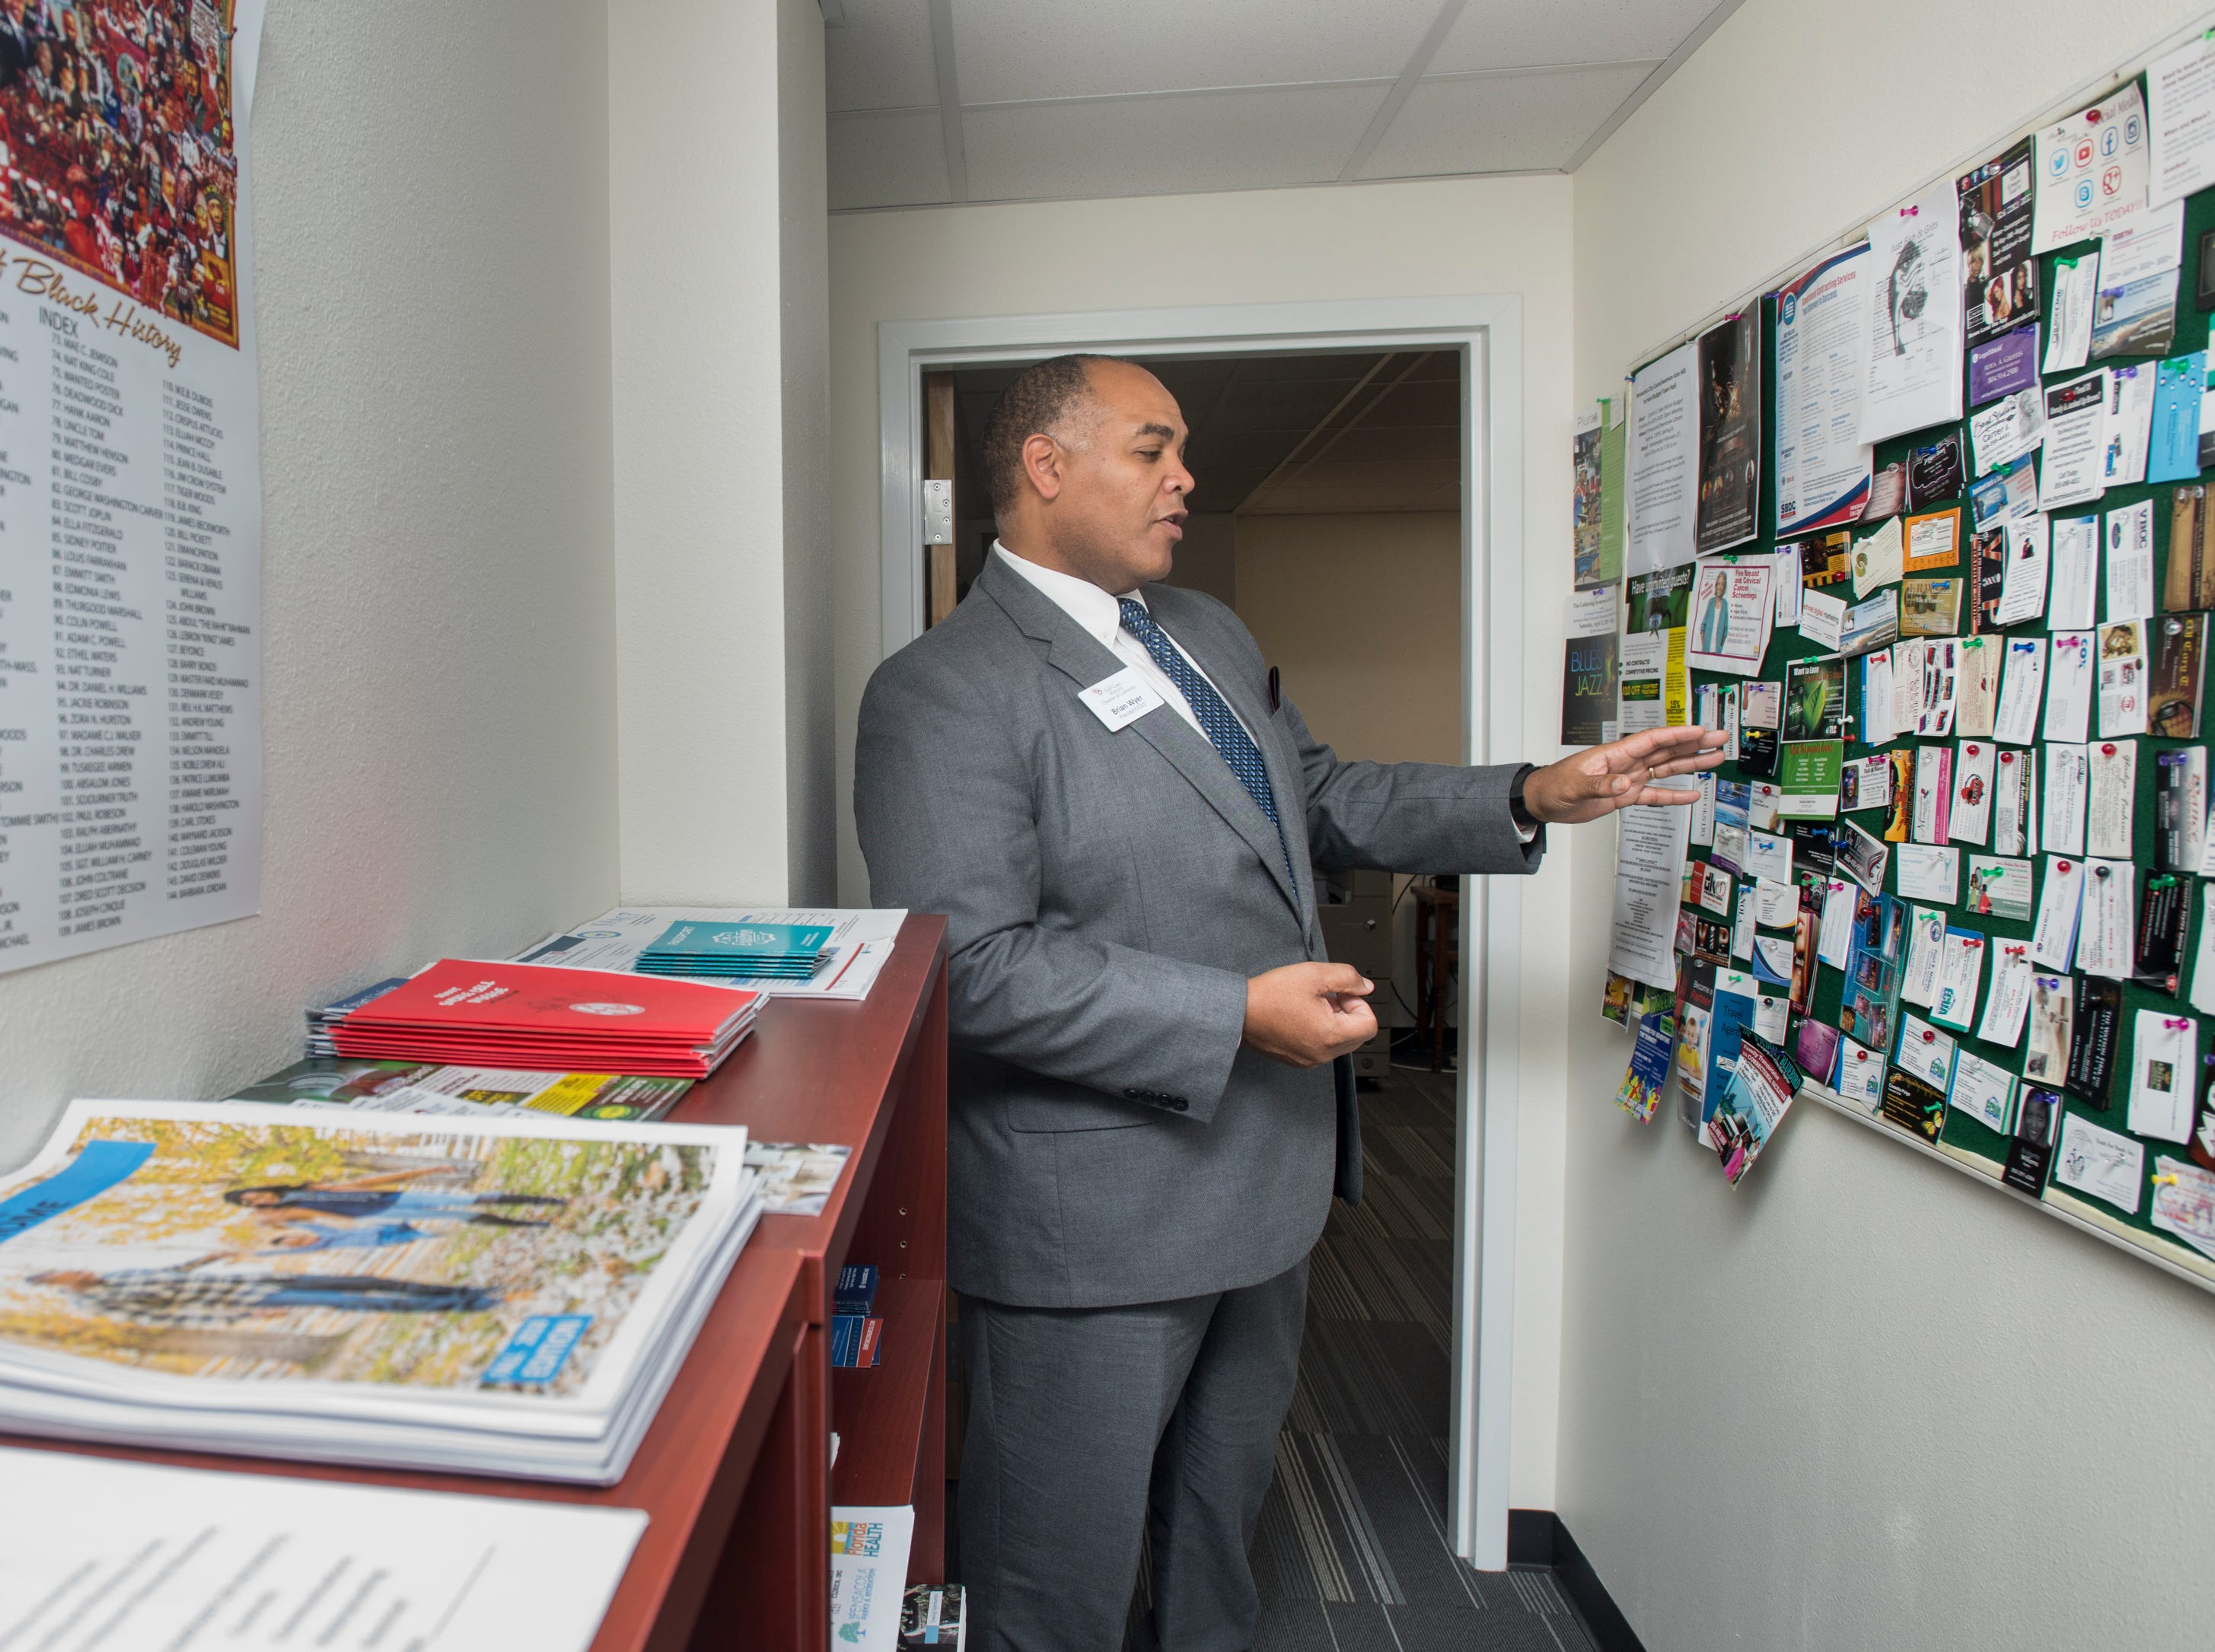 Brian Wyer, President/CEO of the Gulf Coast Minority Chamber of Commerce, points out business cards from African-American owned businesses hung at his office in downtown Pensacola on Monday, March 4, 2019.